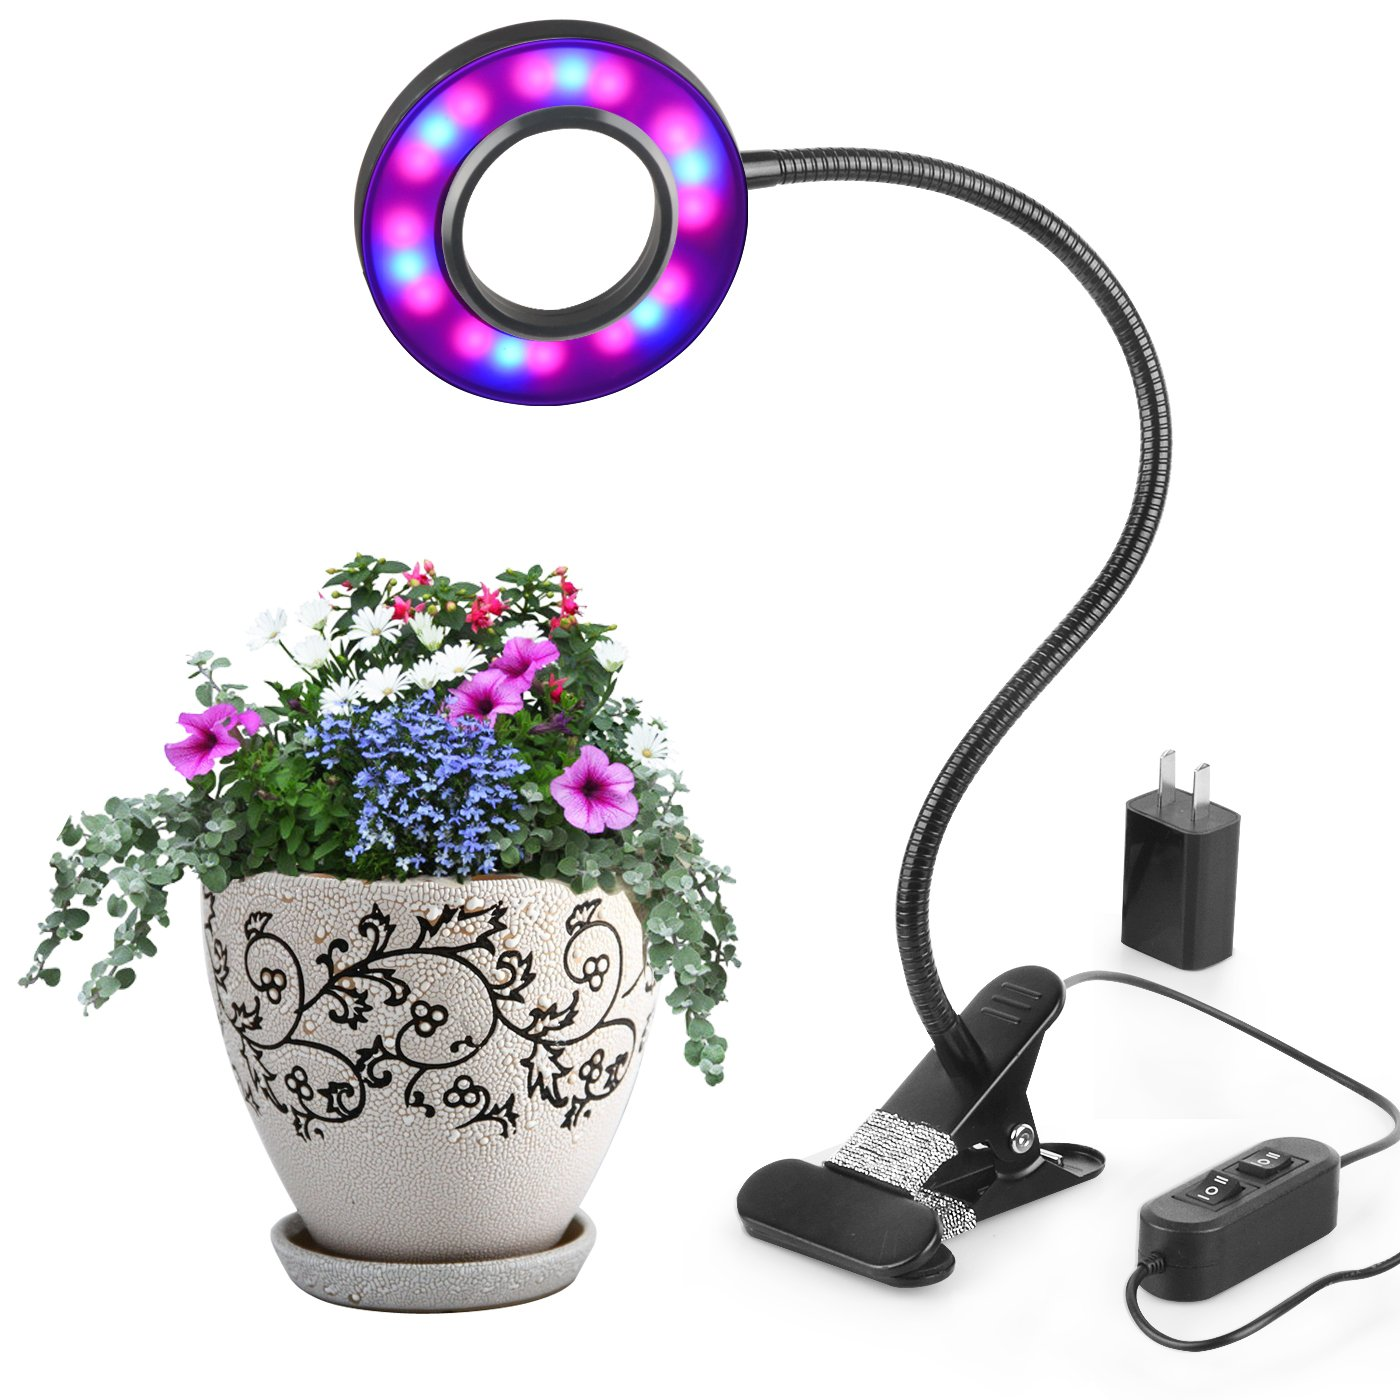 Aokey LED Grow Light